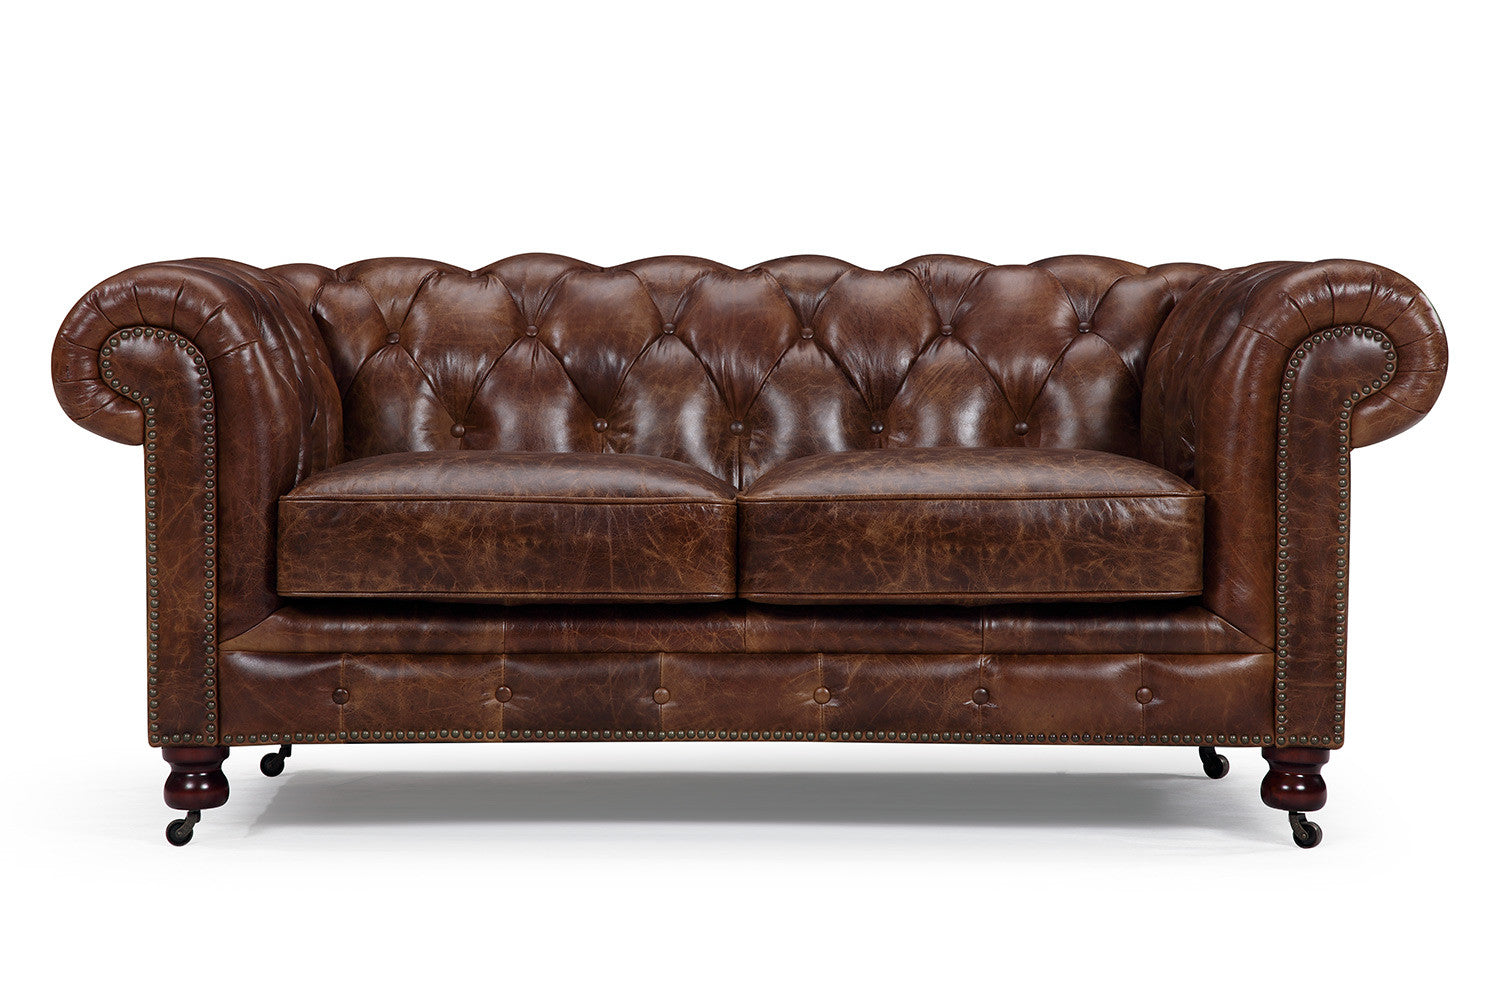 Canap chesterfield en cuir kensington 2 places rose moore for Canape cuir style ancien